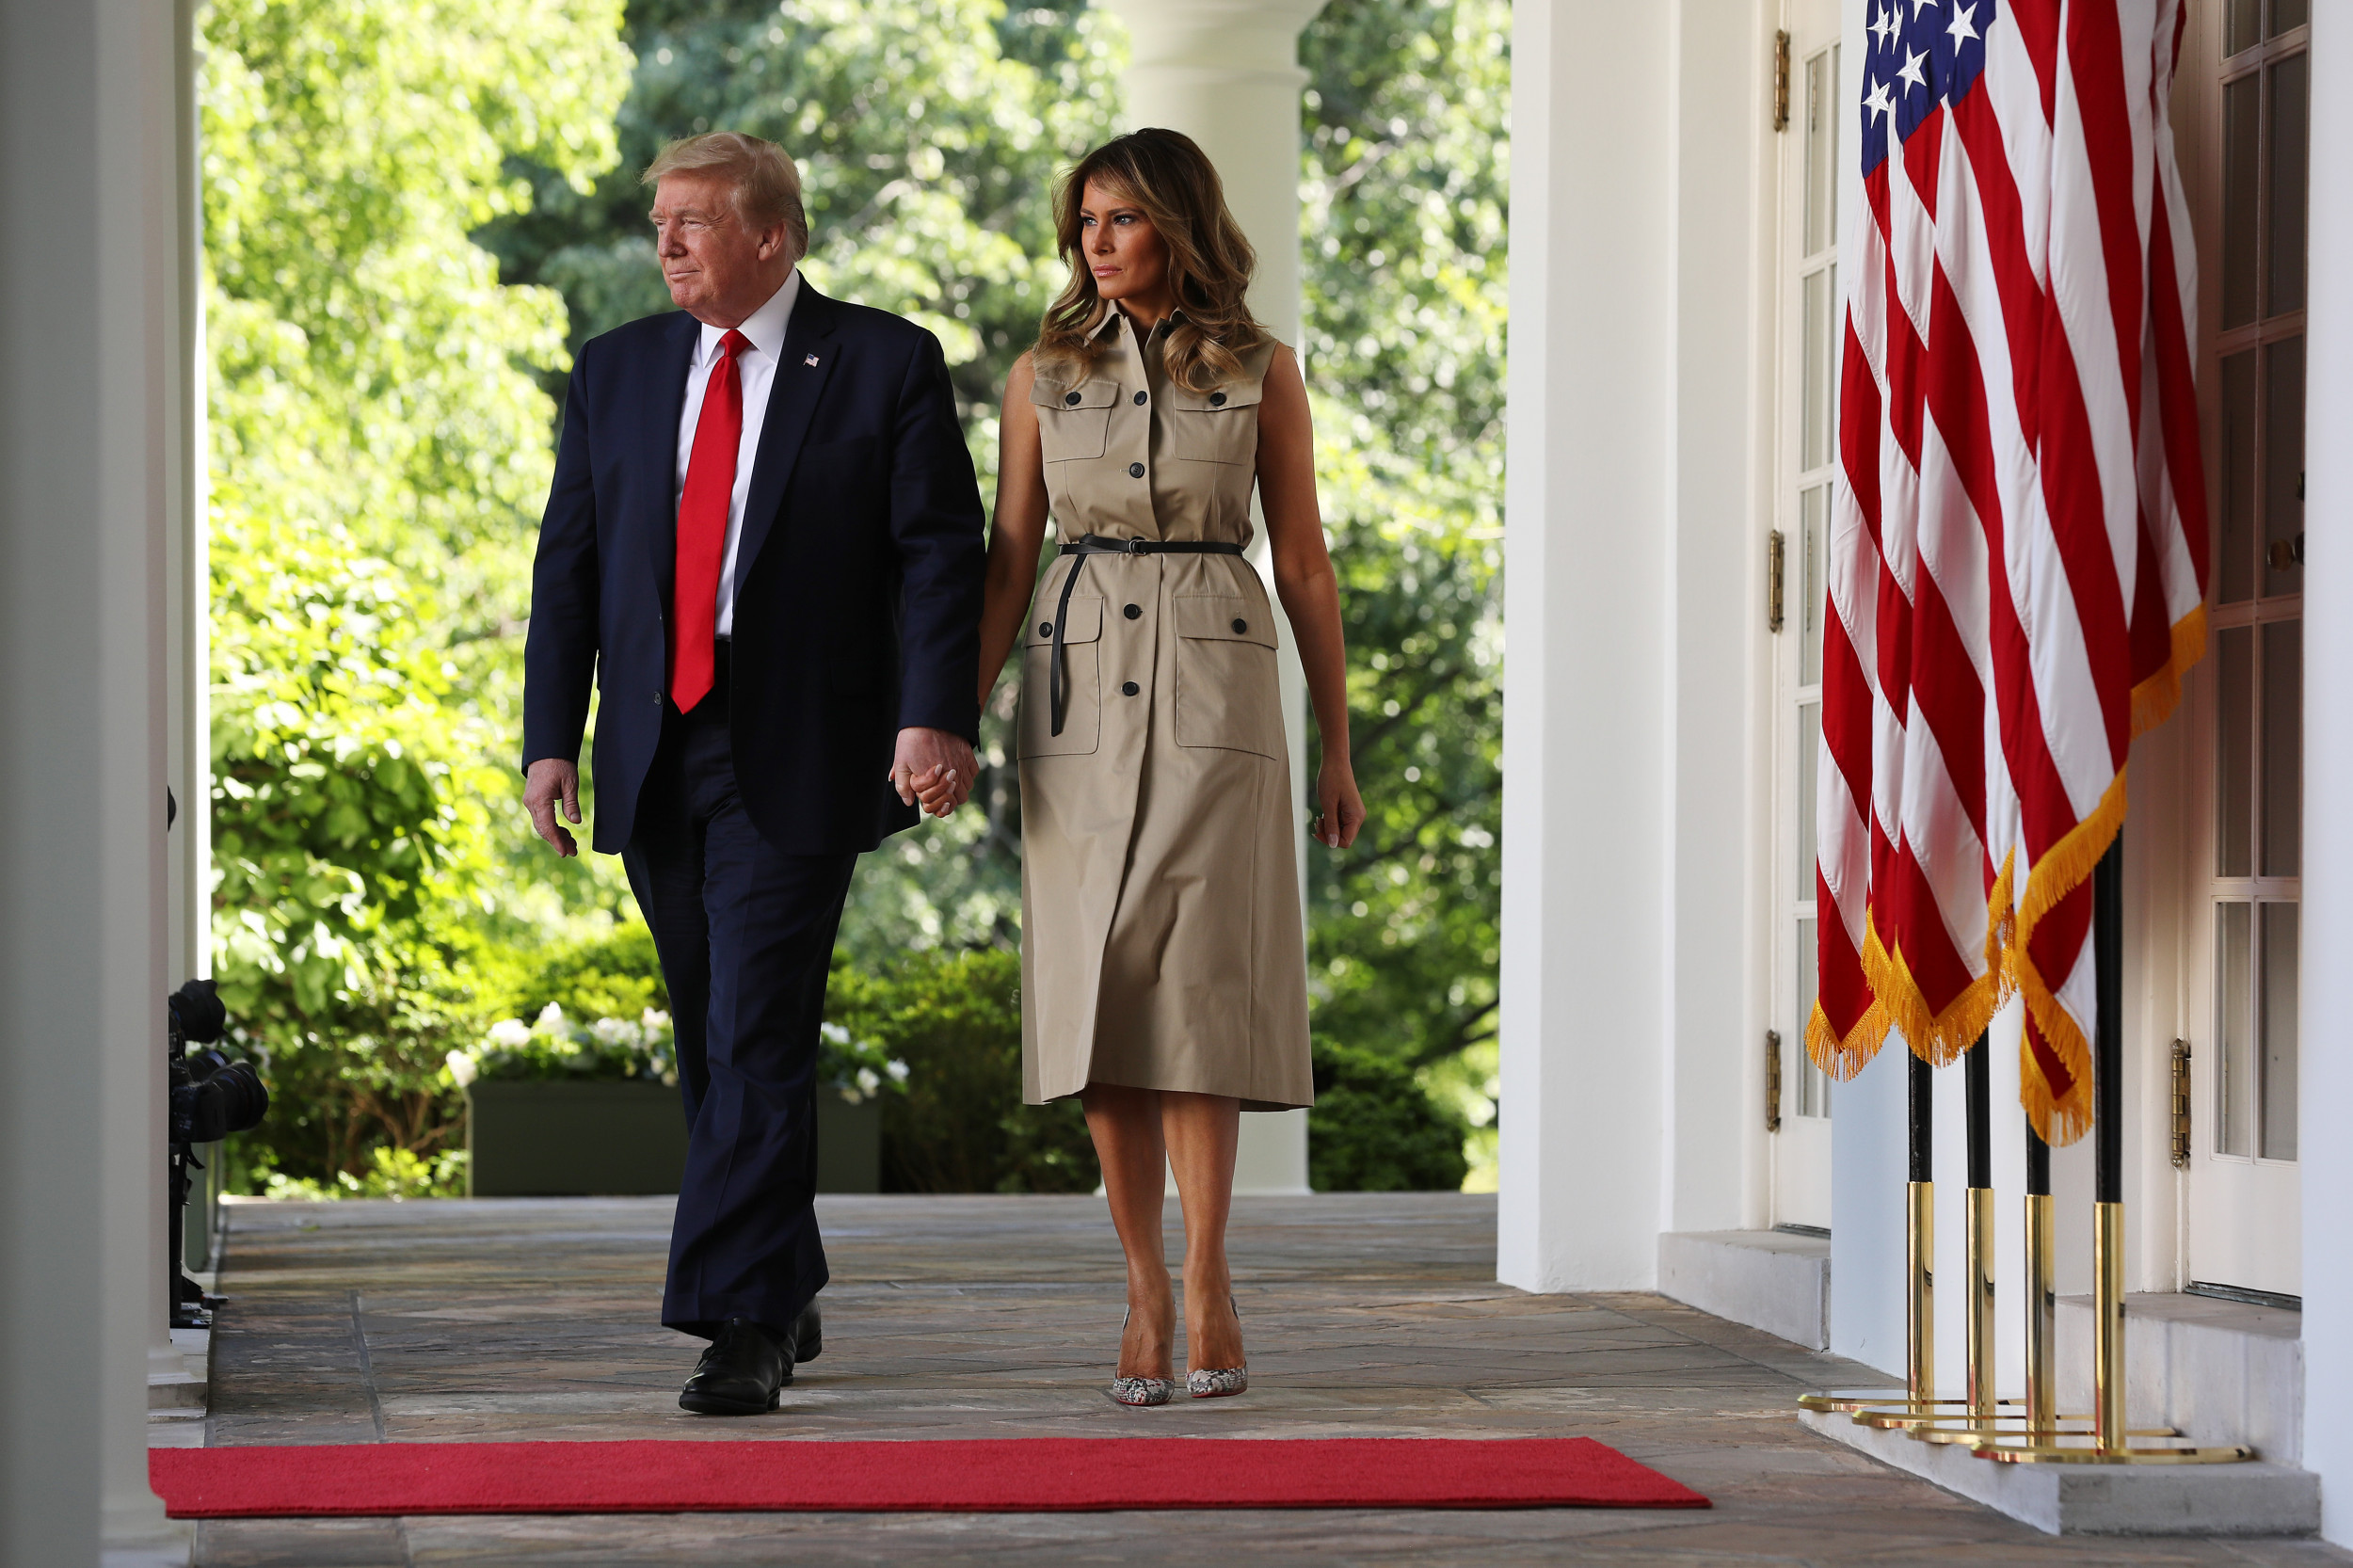 Melania Trump To Renovate White House Rose Garden Amid Difficult Times Are Taxpayers Funding It